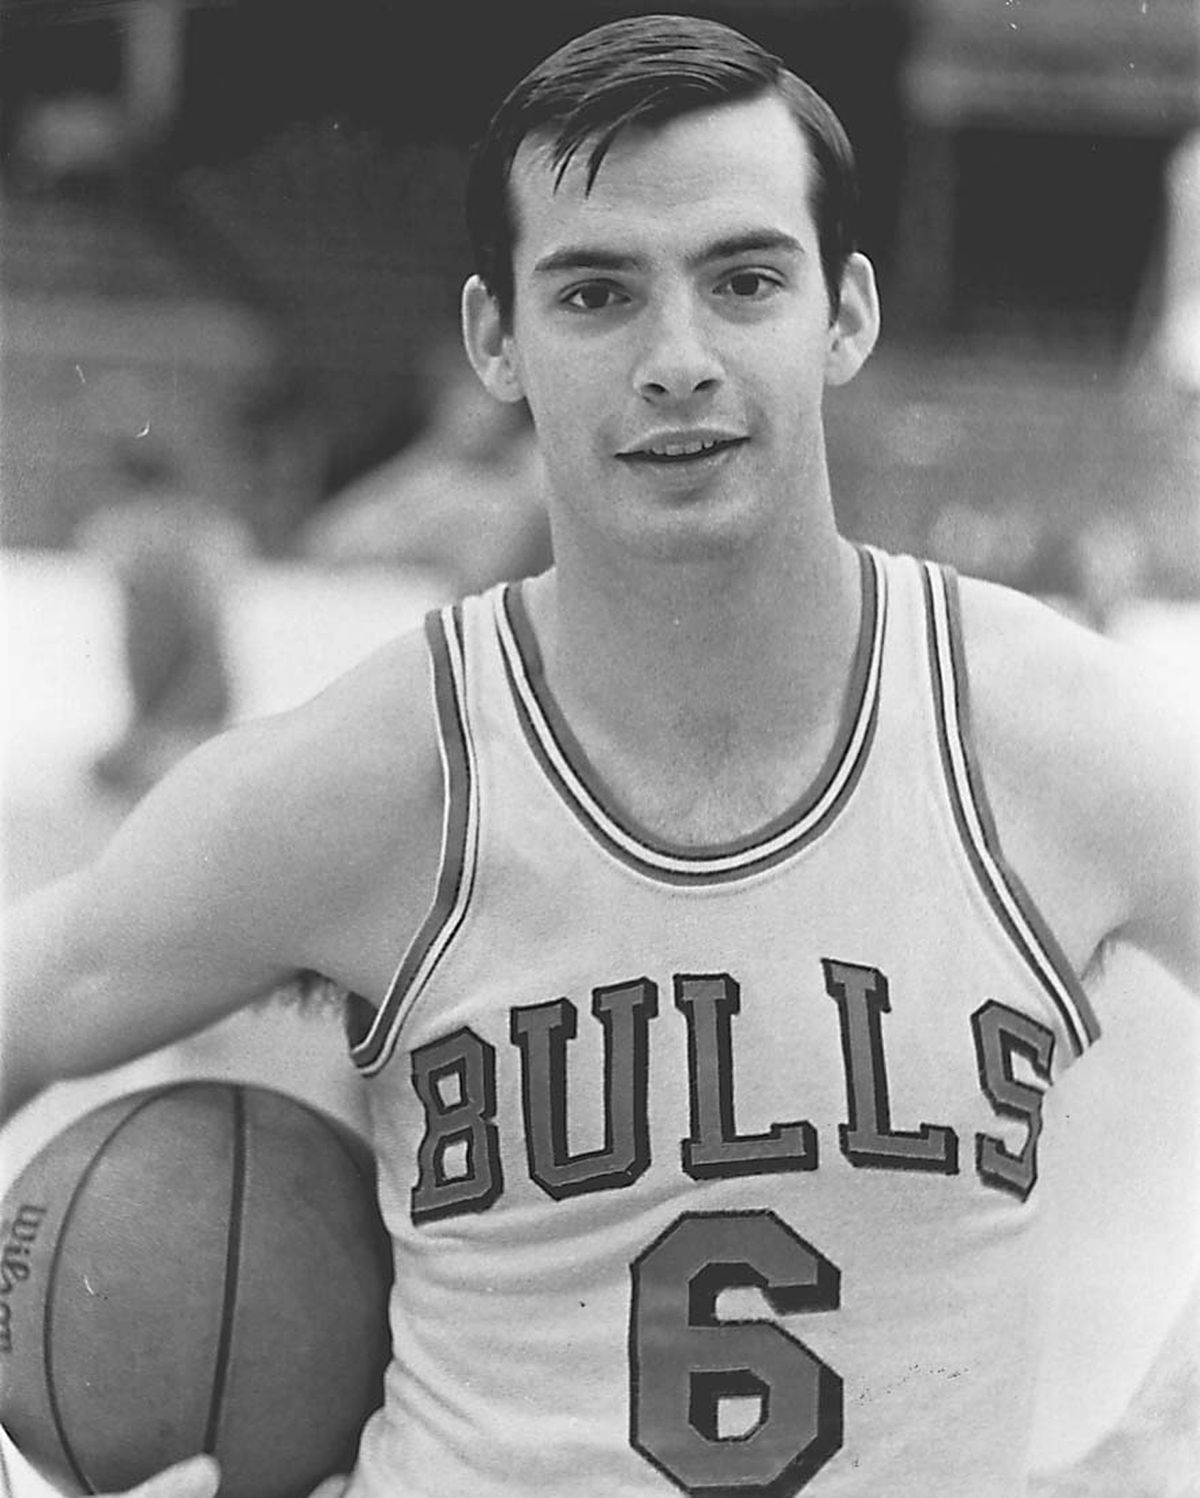 Jim Burns played part of a season for the Chicago Bulls after graduating from Northwestern University.